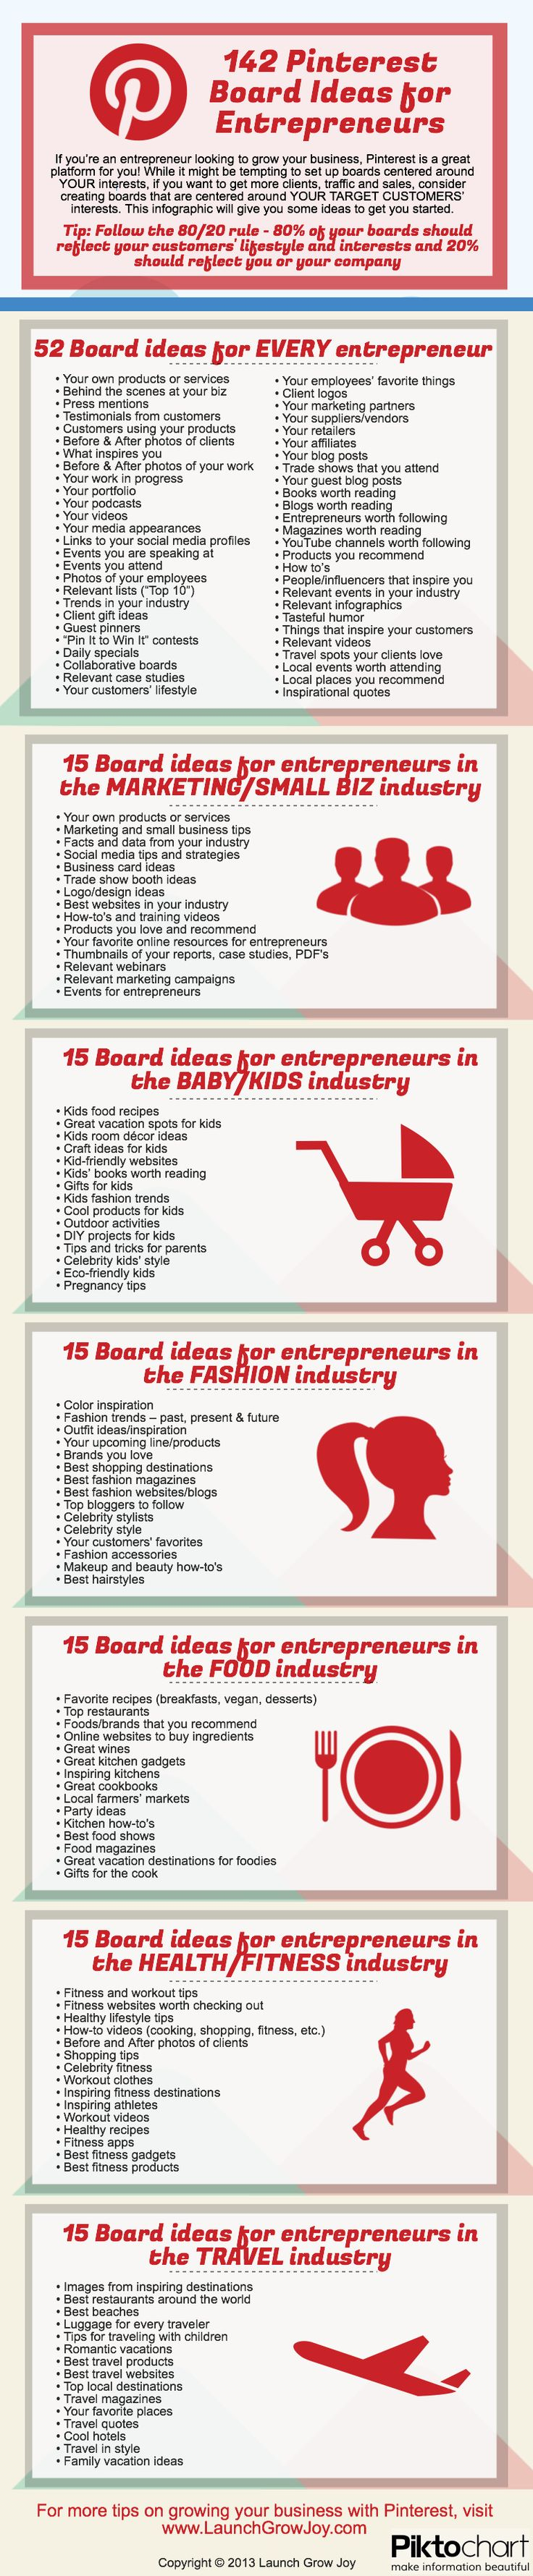 142 ideas for Pinterest boards for any business via @angela4design..good advice